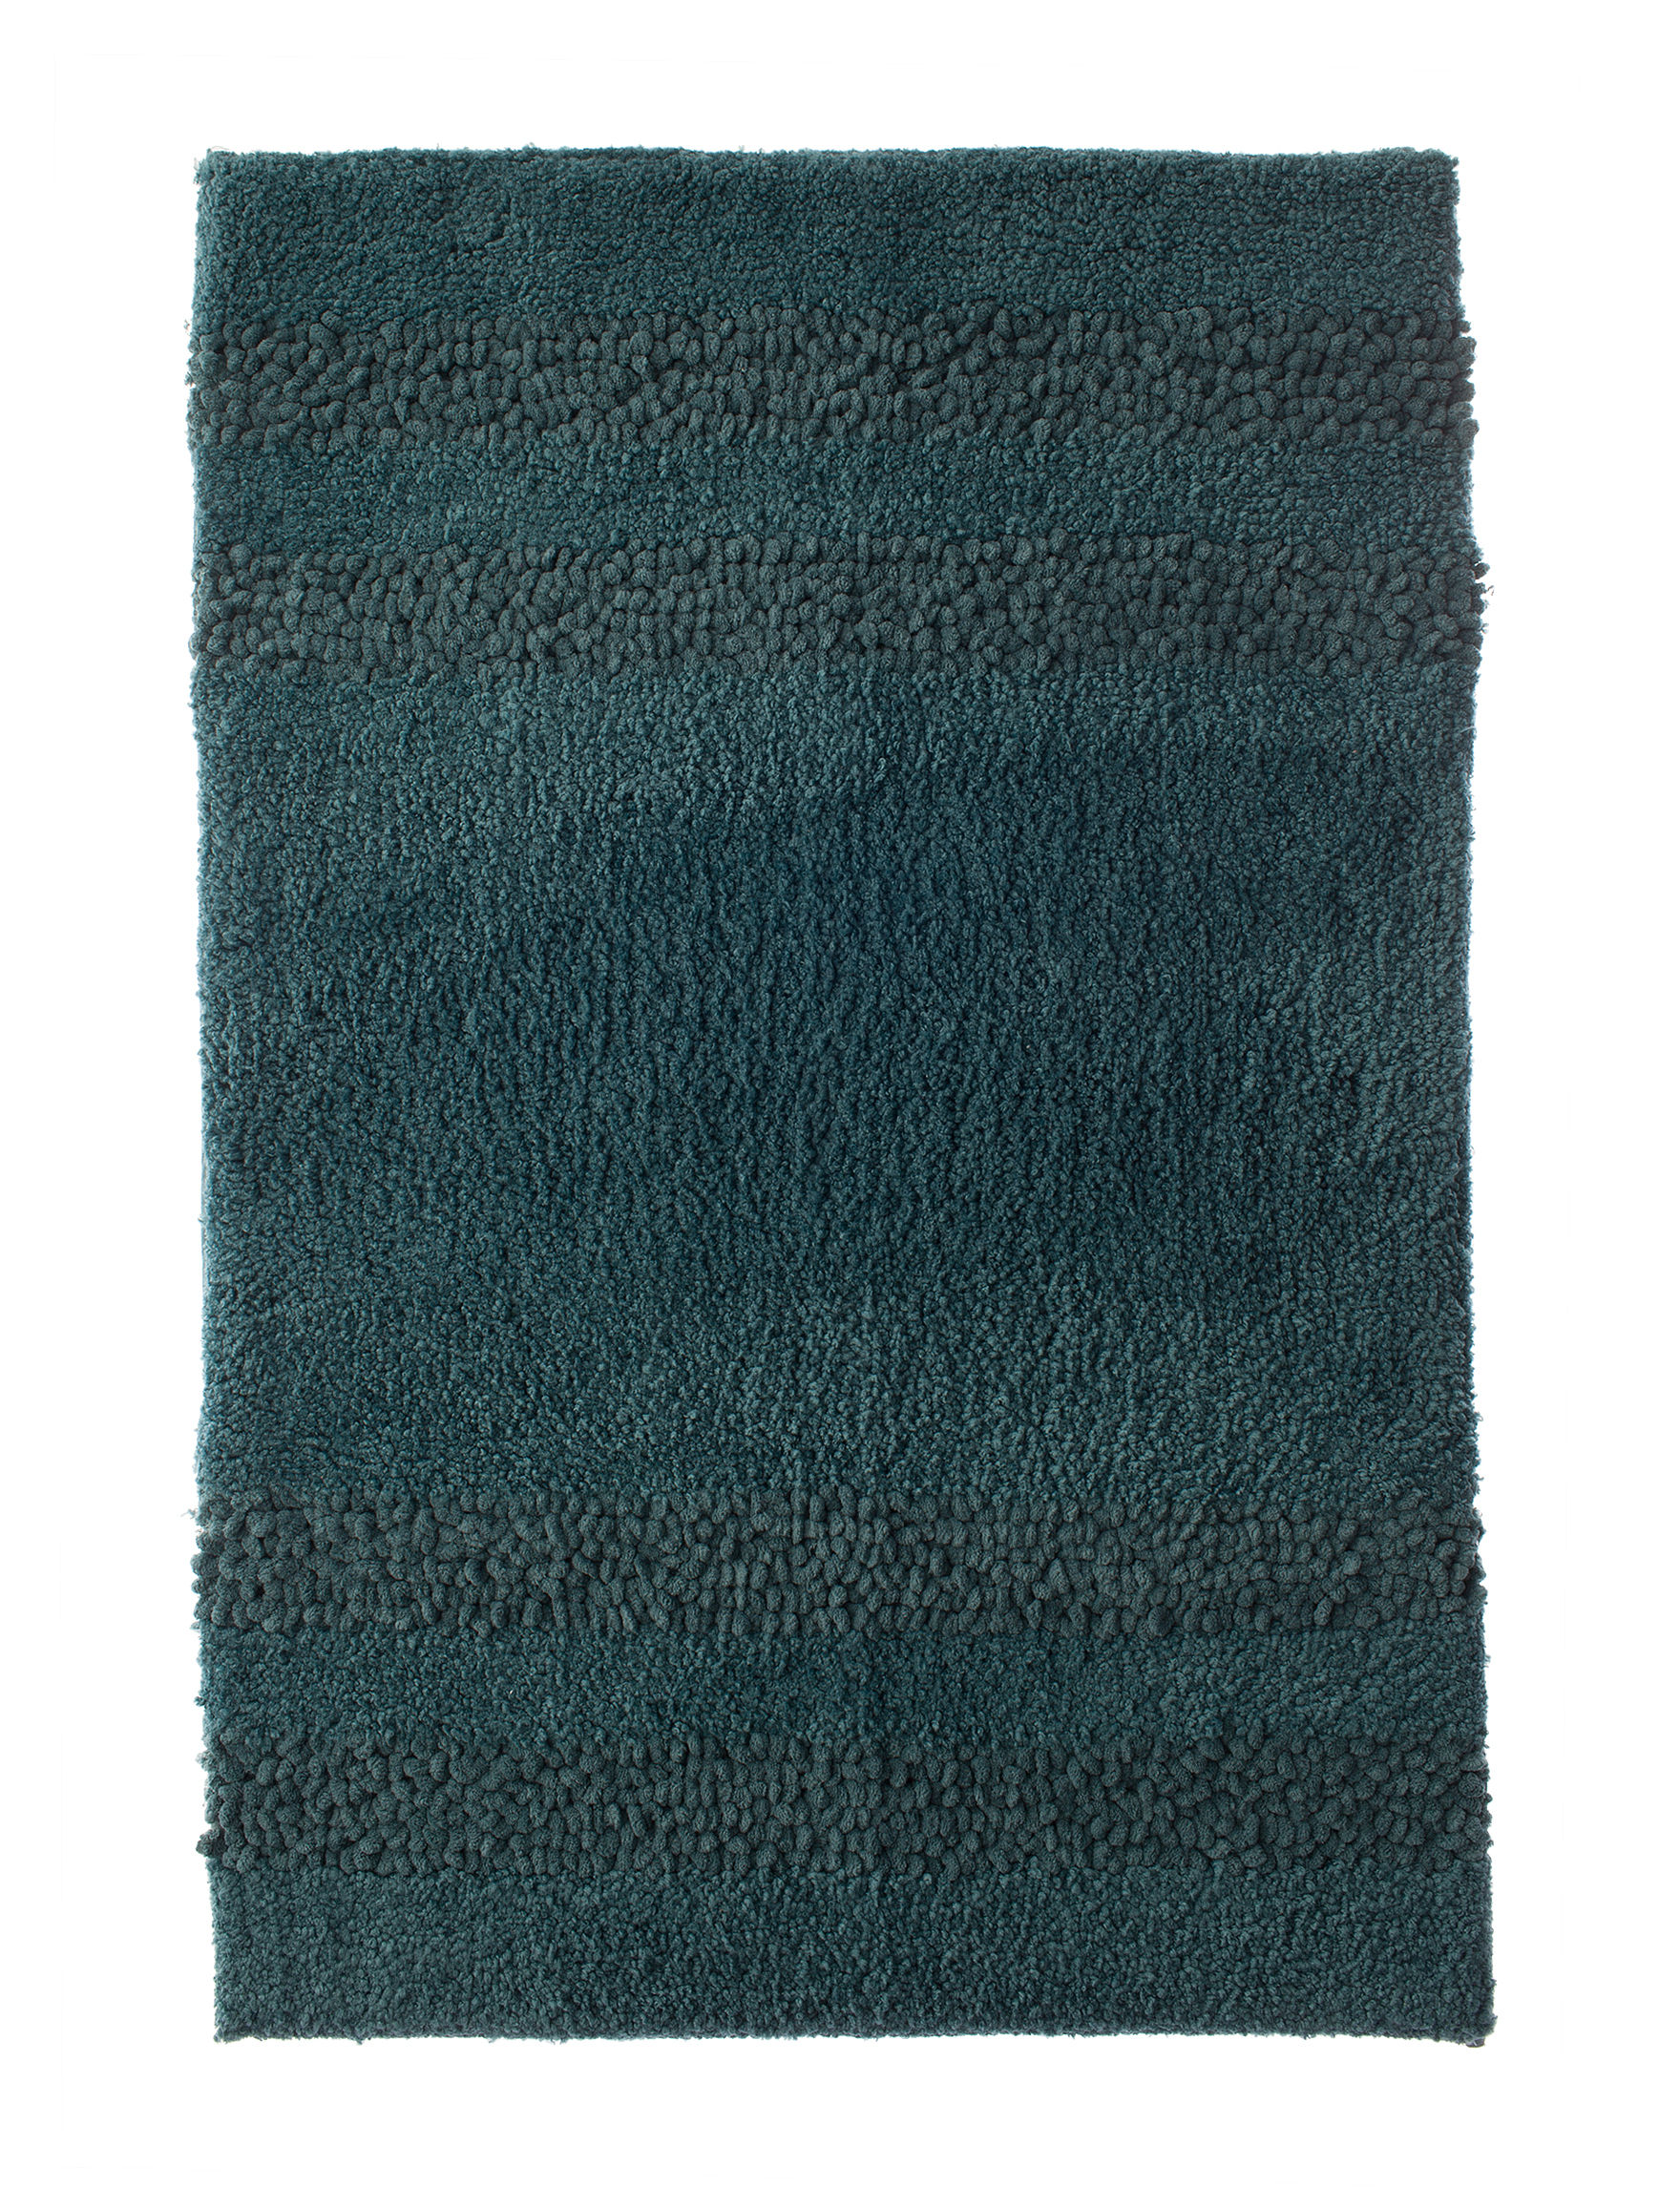 Great Hotels Collection Teal Bath Rugs & Mats